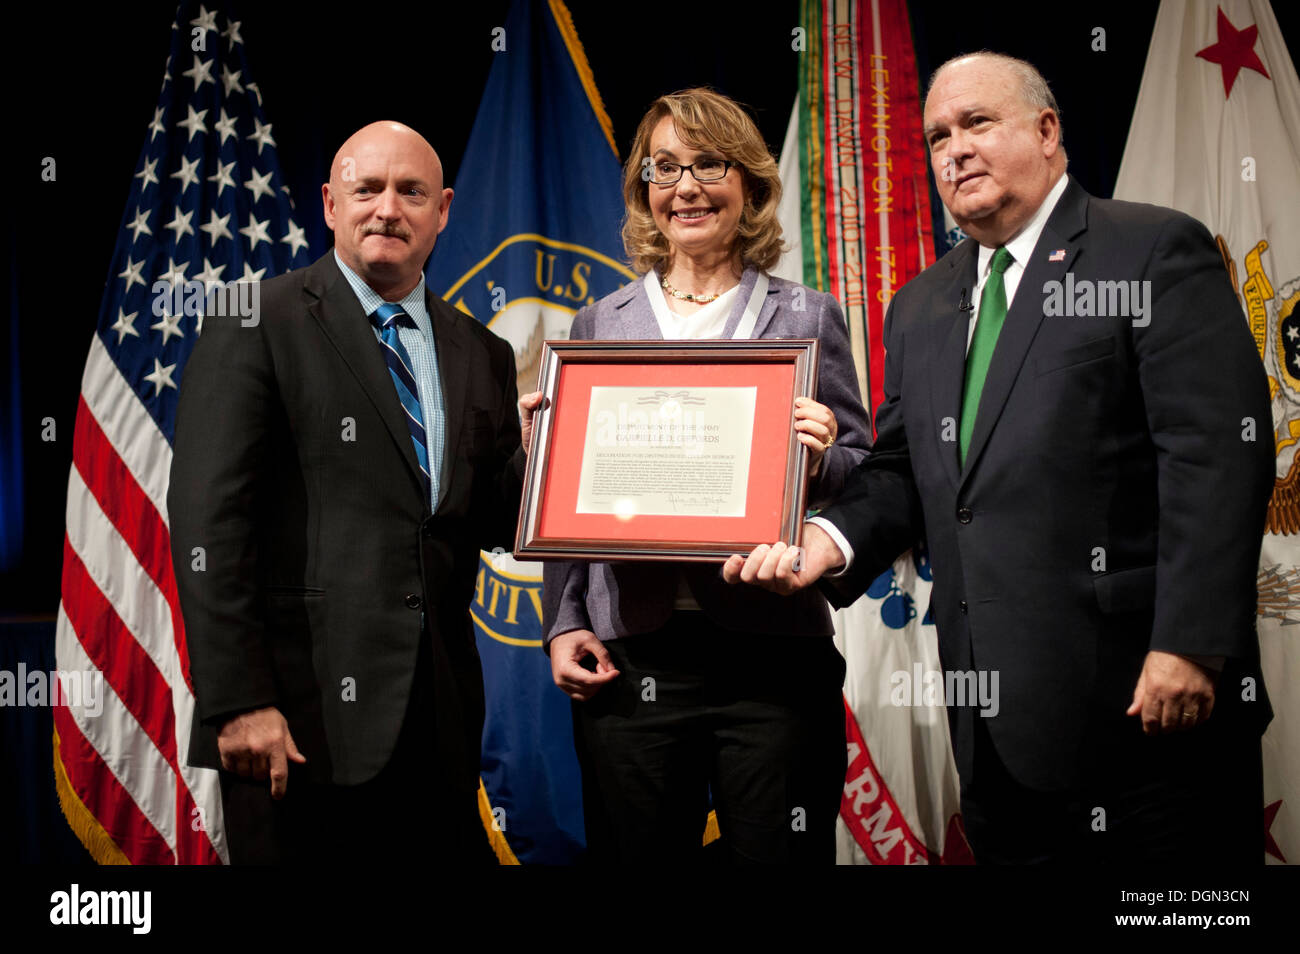 Under Secretary of the Army Joseph W. Westphal (far right) presents the Army Decoration for Distinguished Civilian Service to former Rep. Gabrielle 'Gabby' Giffords (Ariz.) for 'outstanding public service and support of the Army's missions', October 10, 2 - Stock Image